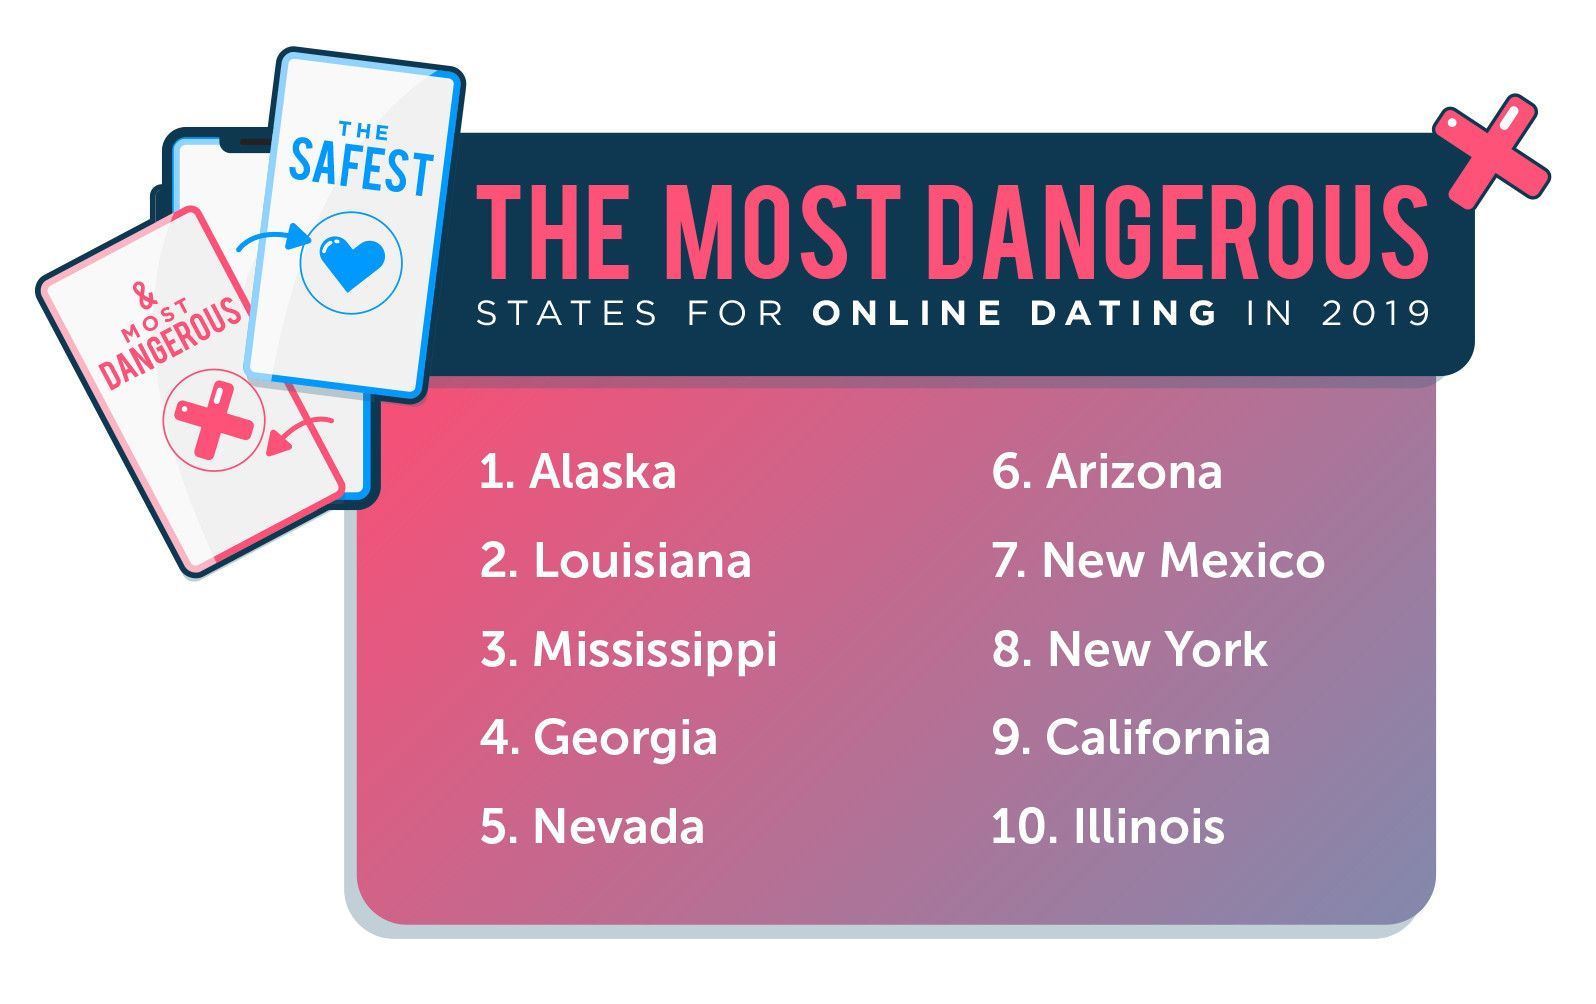 Online Dating is Safest in New England, Most Dangerous in